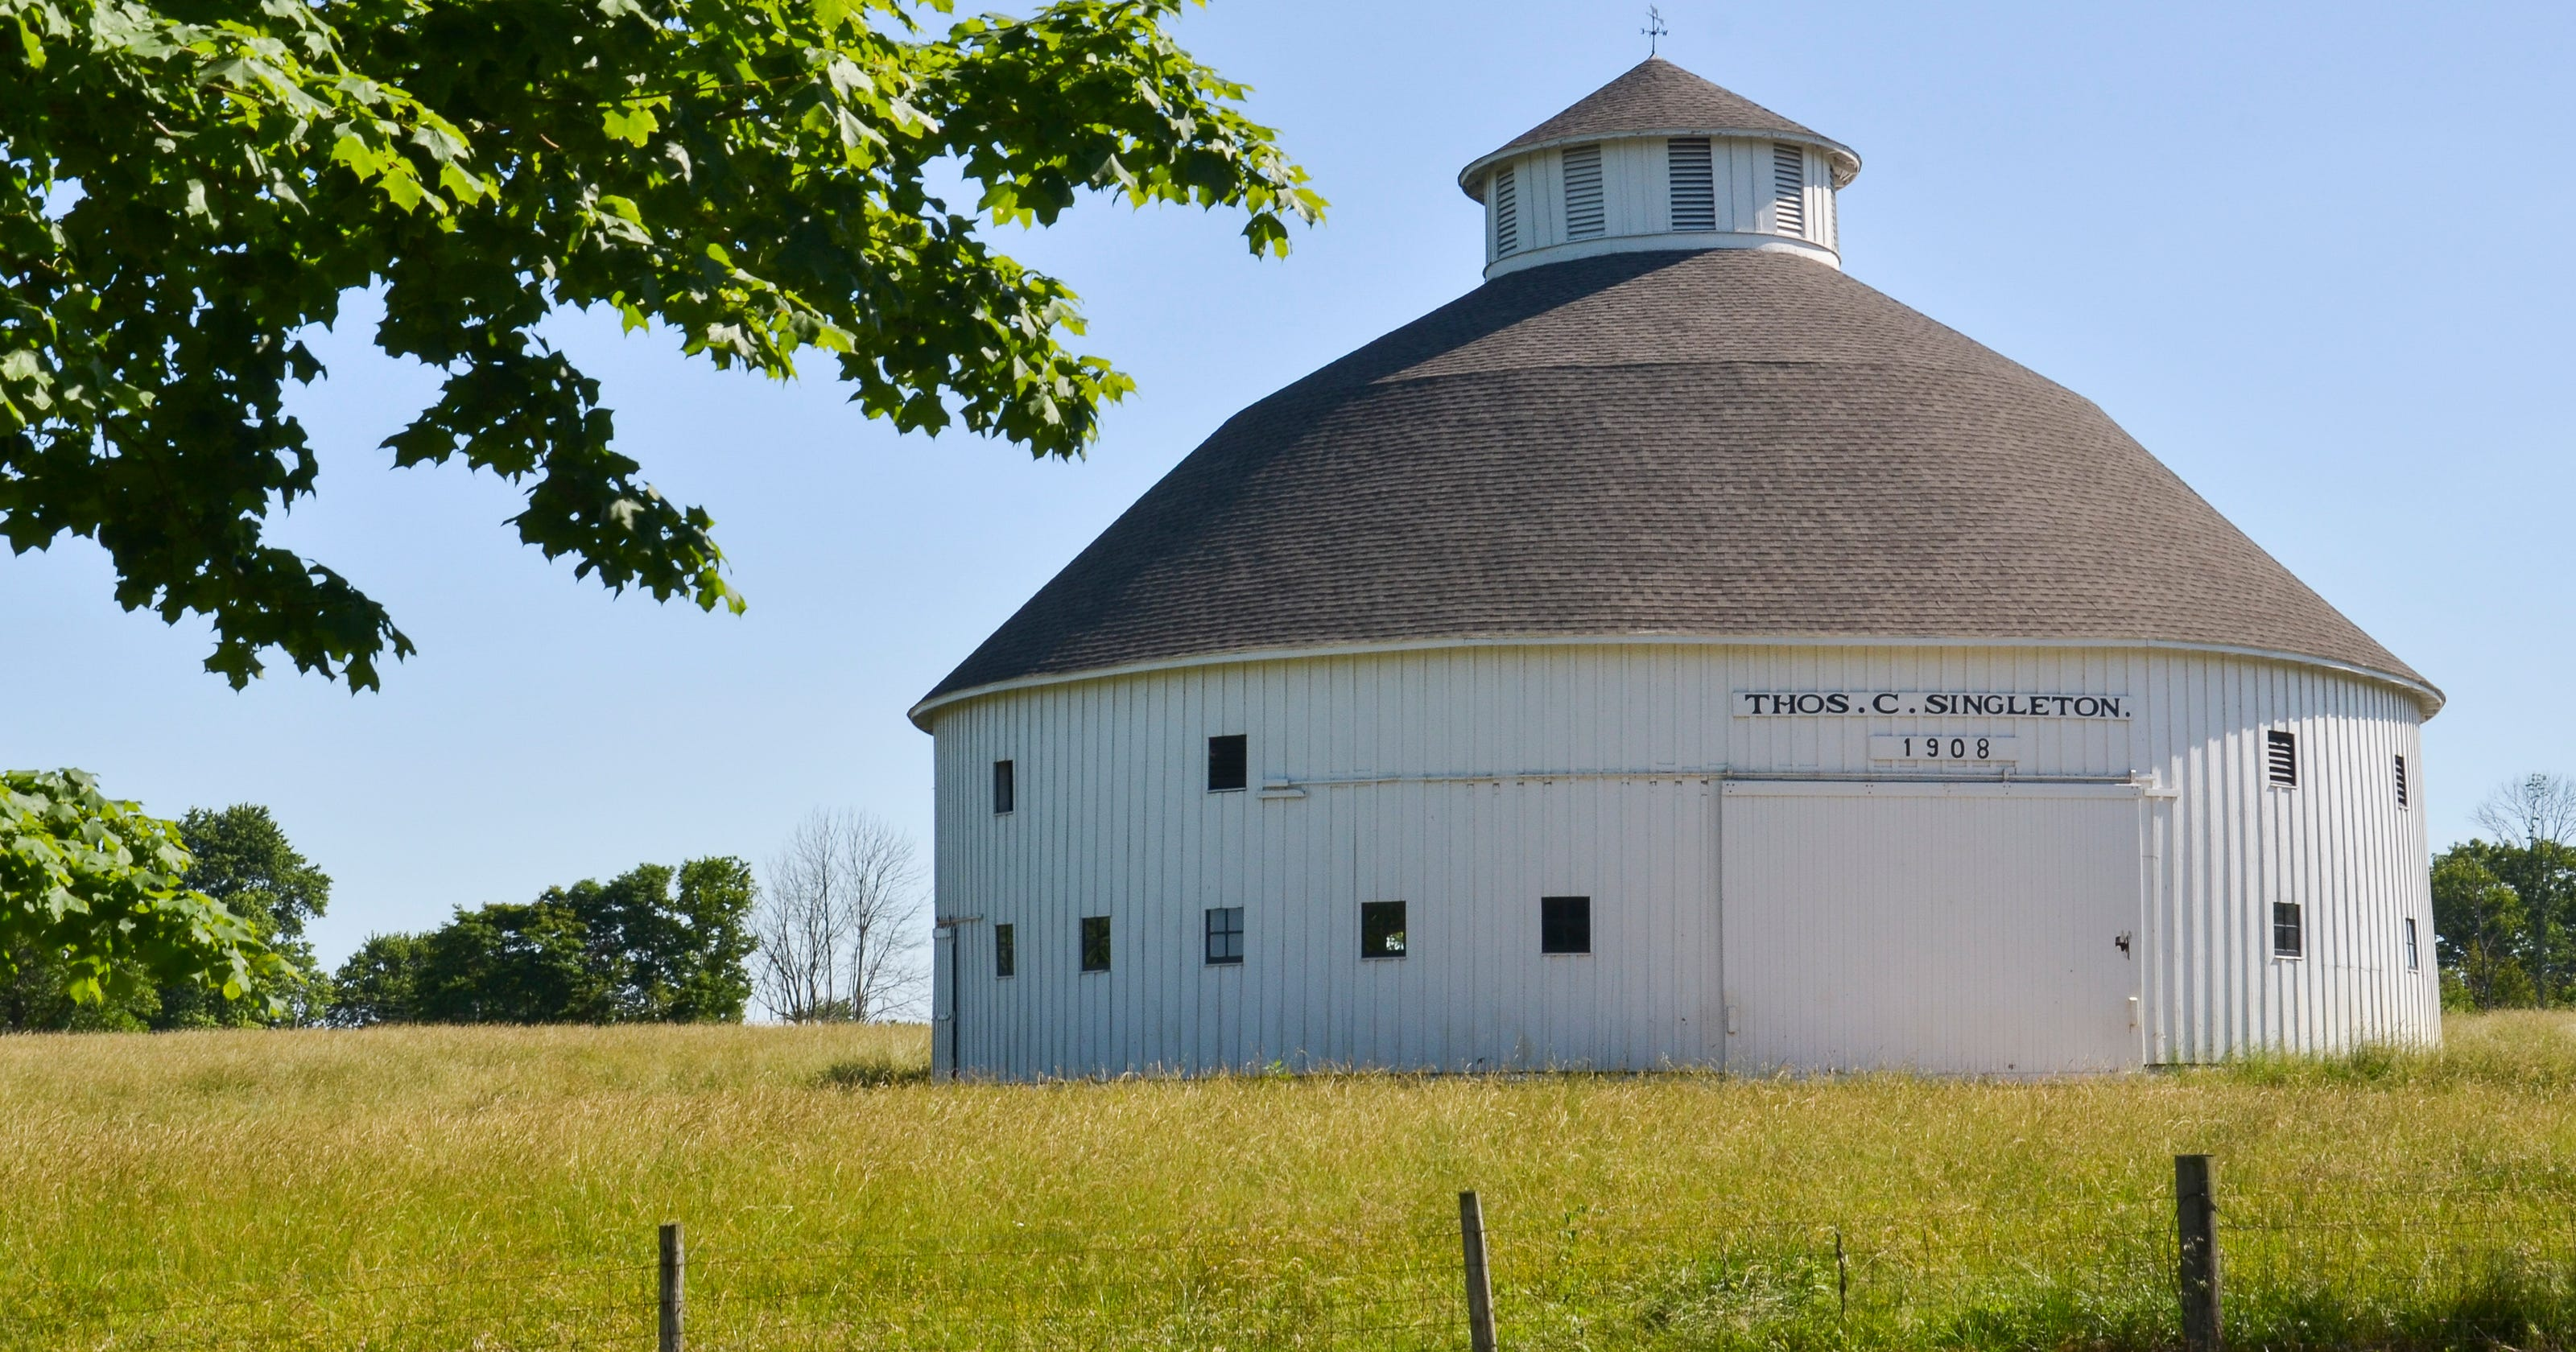 Round Barns Becoming More Rare In Indiana